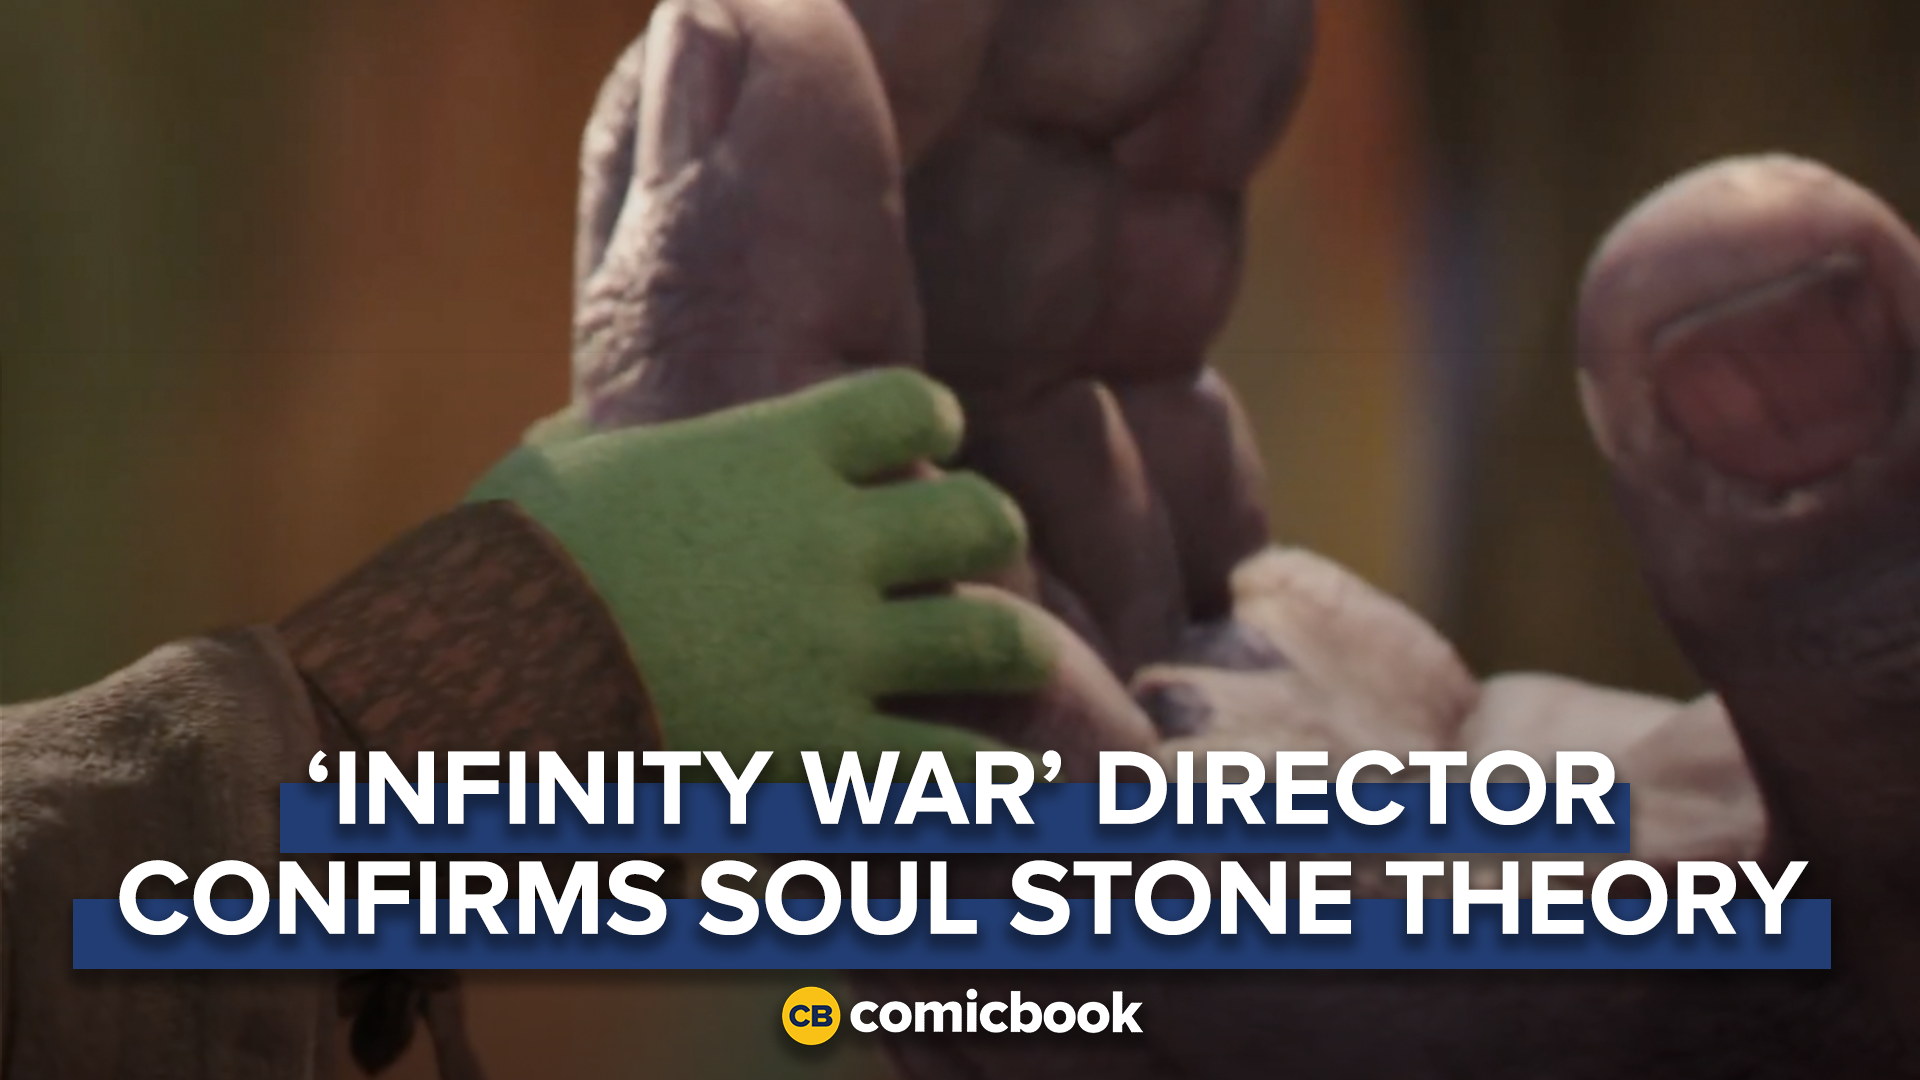 'Avengers: Infinity War' Director Confirms Soul Stone Theory screen capture